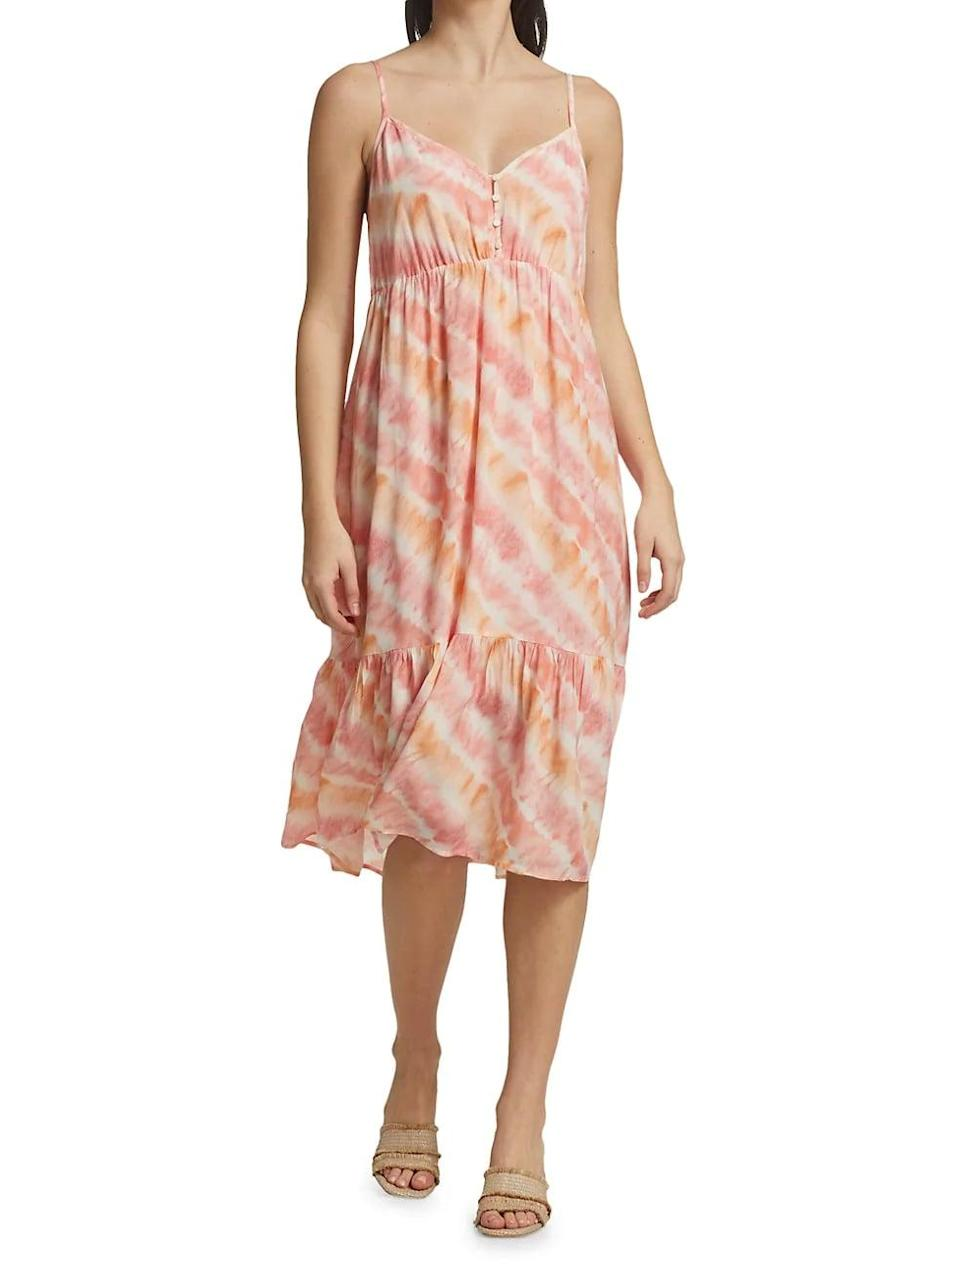 <p>This <span>Rails Delilah Tie-Dye Tiered Dress</span> ($198) makes an easy-breezy pick for summer picnics, museum dates, or coffee shop runs.</p>